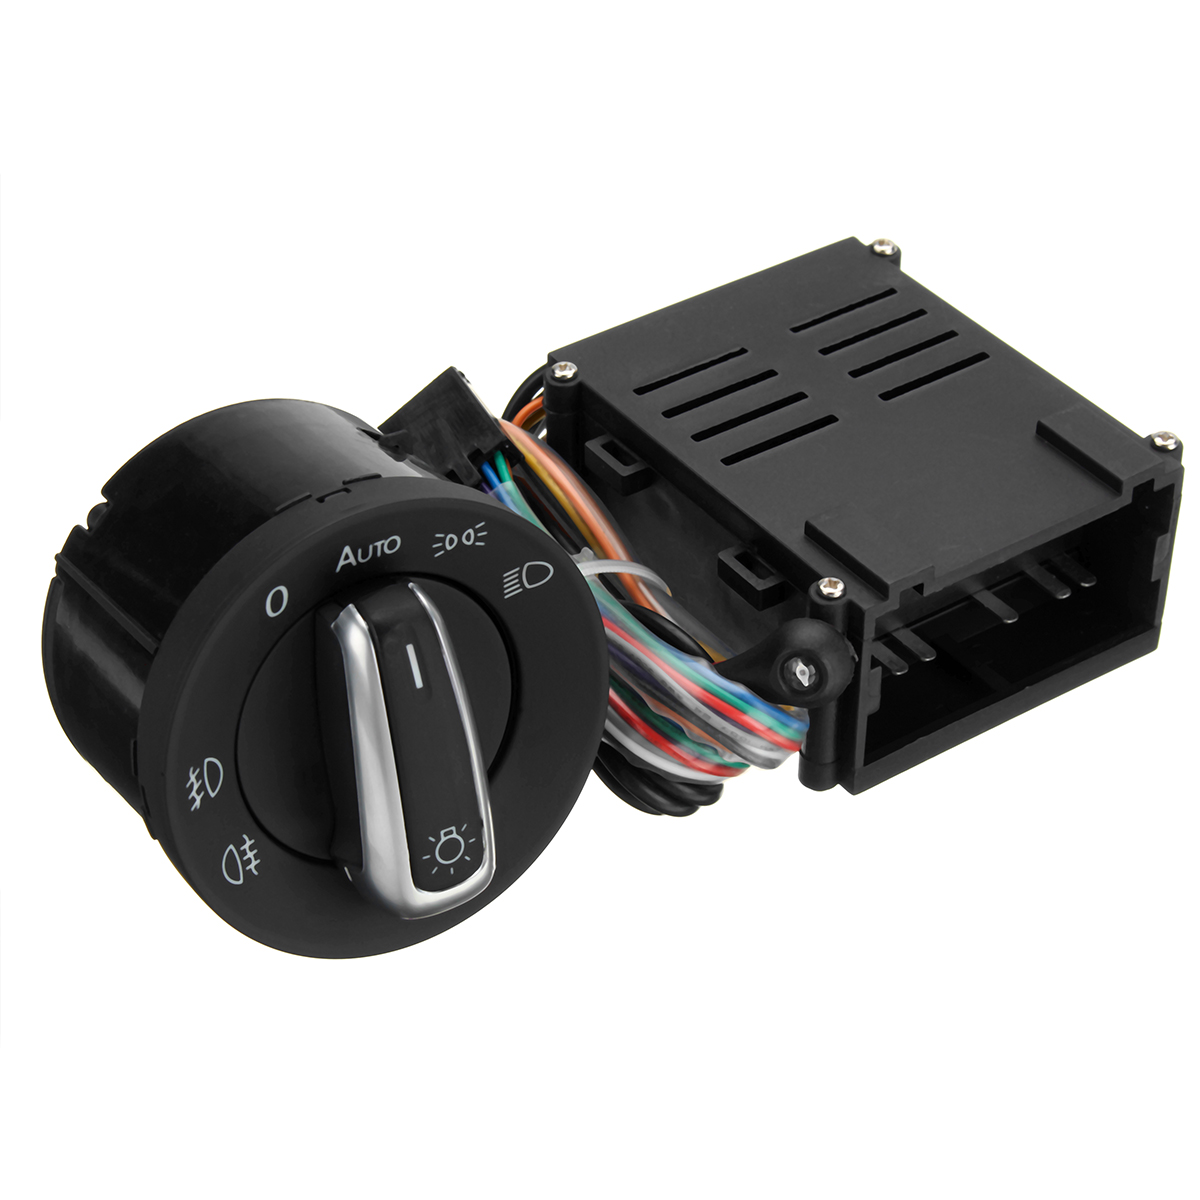 Image 3 - Car Auto Headlight Sensor HeadLamp Knob Switch Control Module for VW T5 T5.1 Transporter 2003 2015-in Car Switches & Relays from Automobiles & Motorcycles